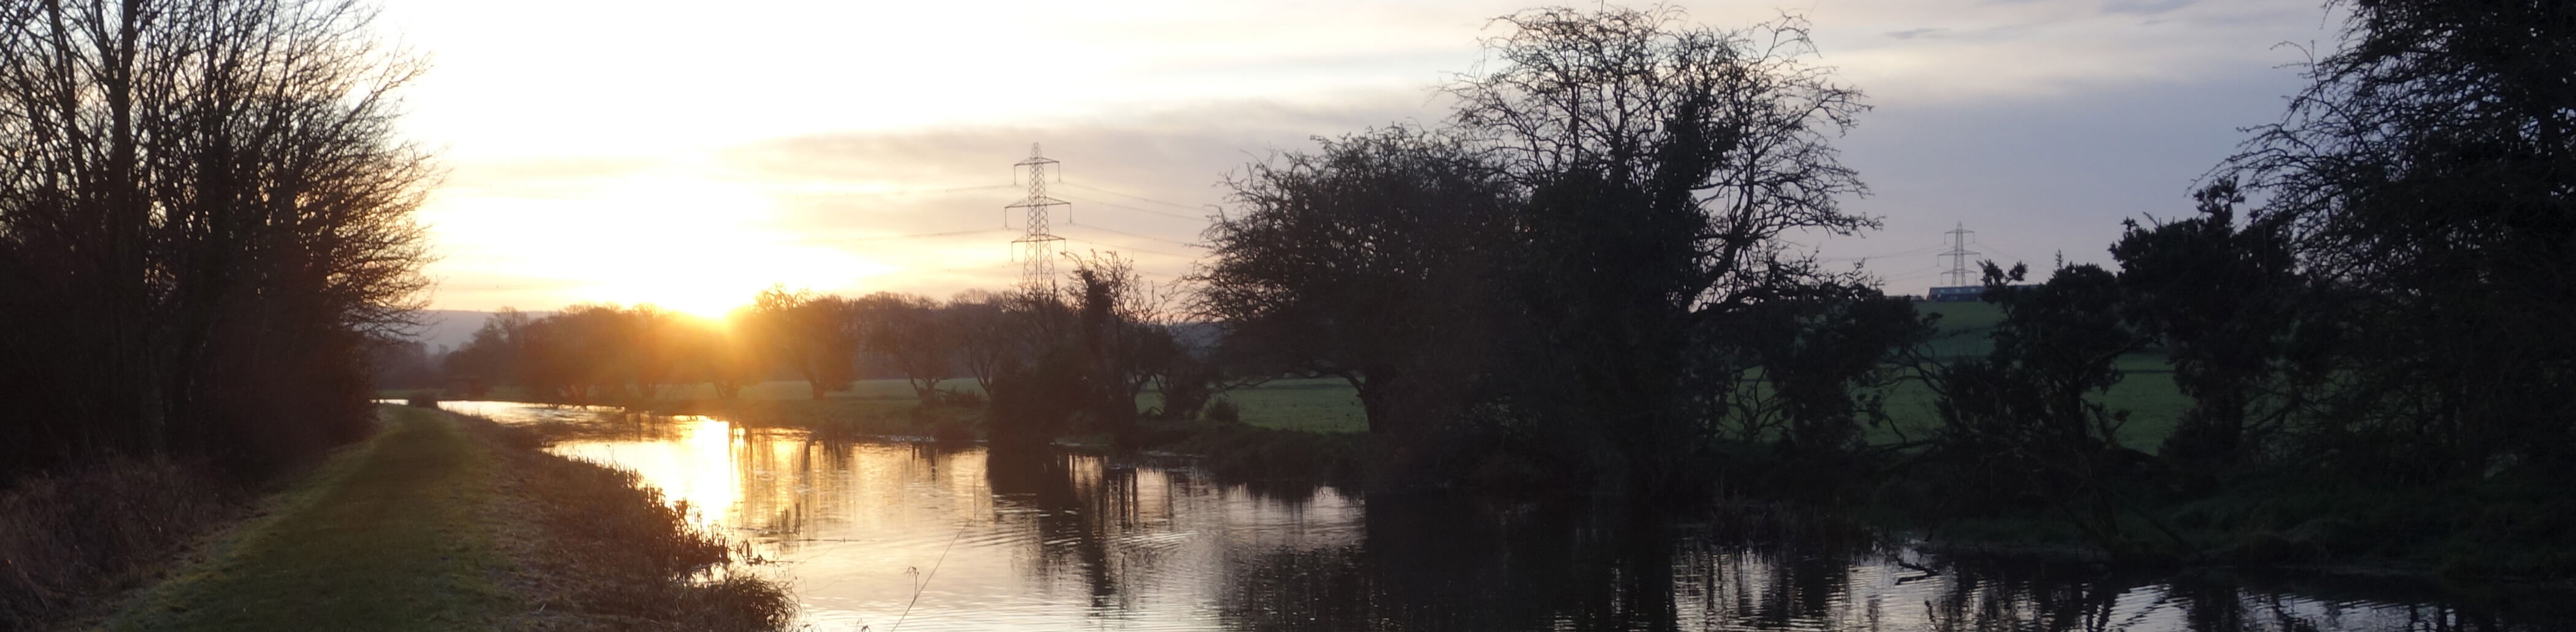 Glasson canal